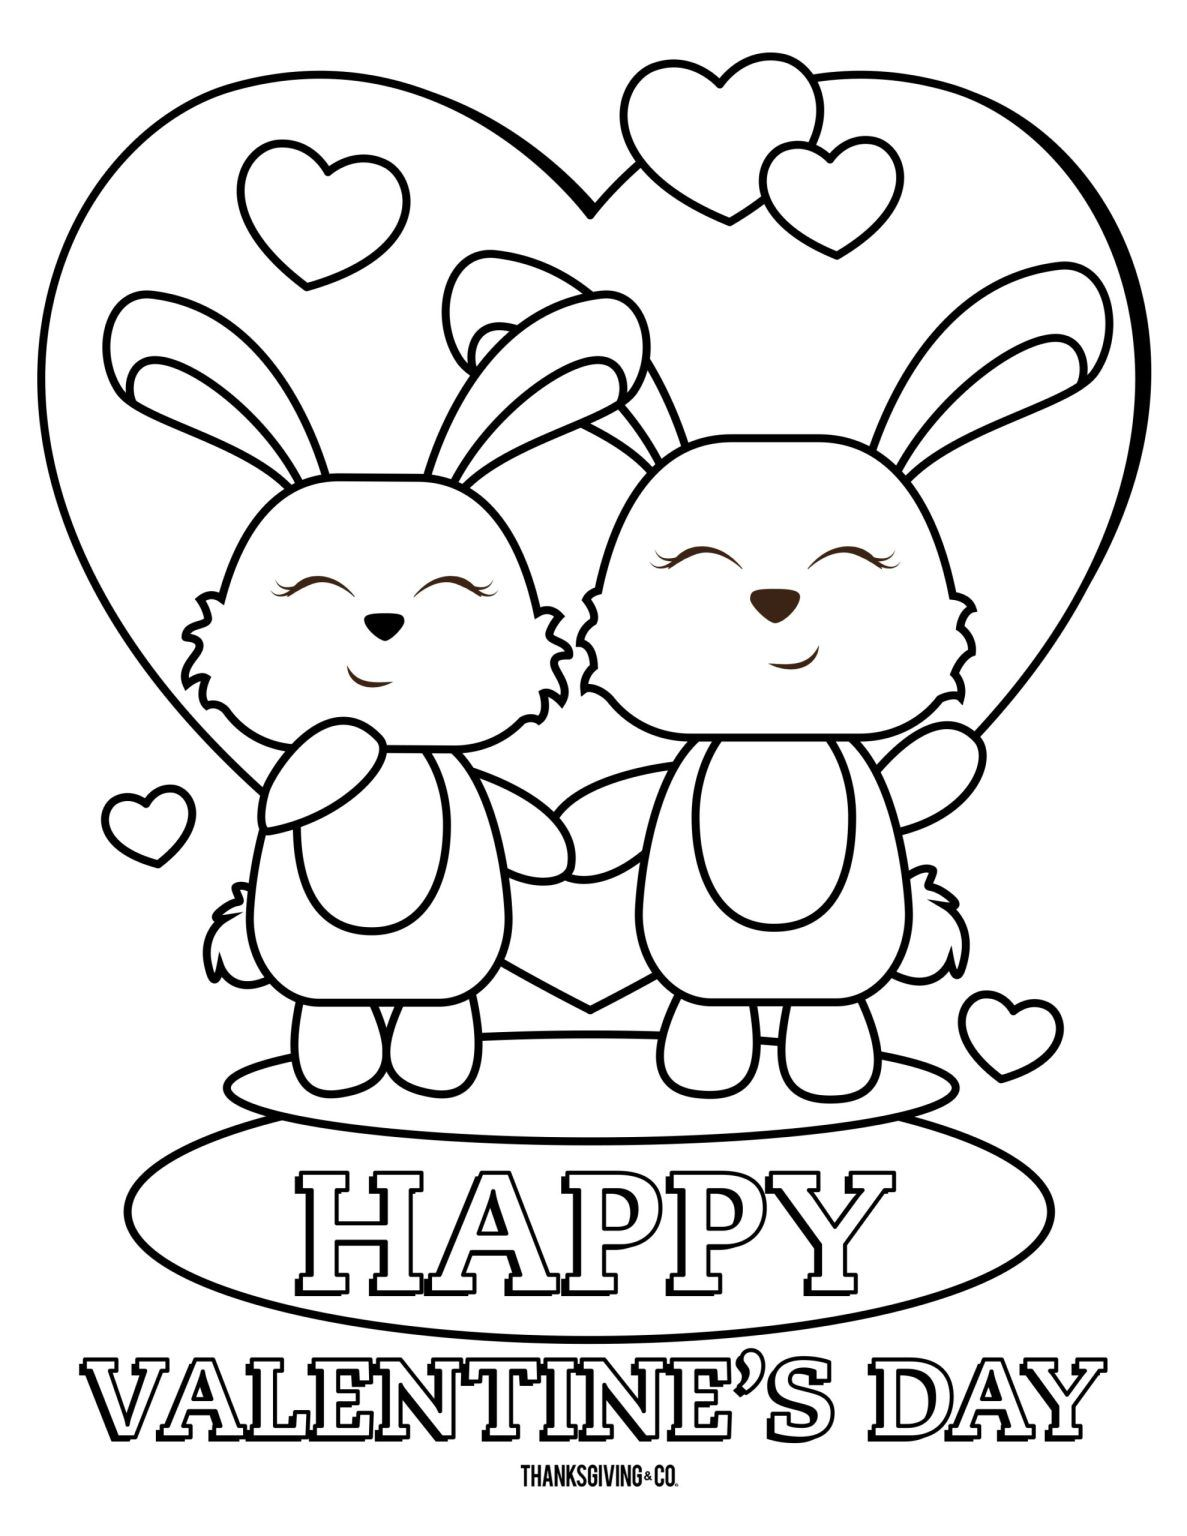 35 Sweet Valentines Coloring Pages To Enjoy Ohlade Bunny Coloring Pages Valentines Day Coloring Page Valentine Coloring Pages